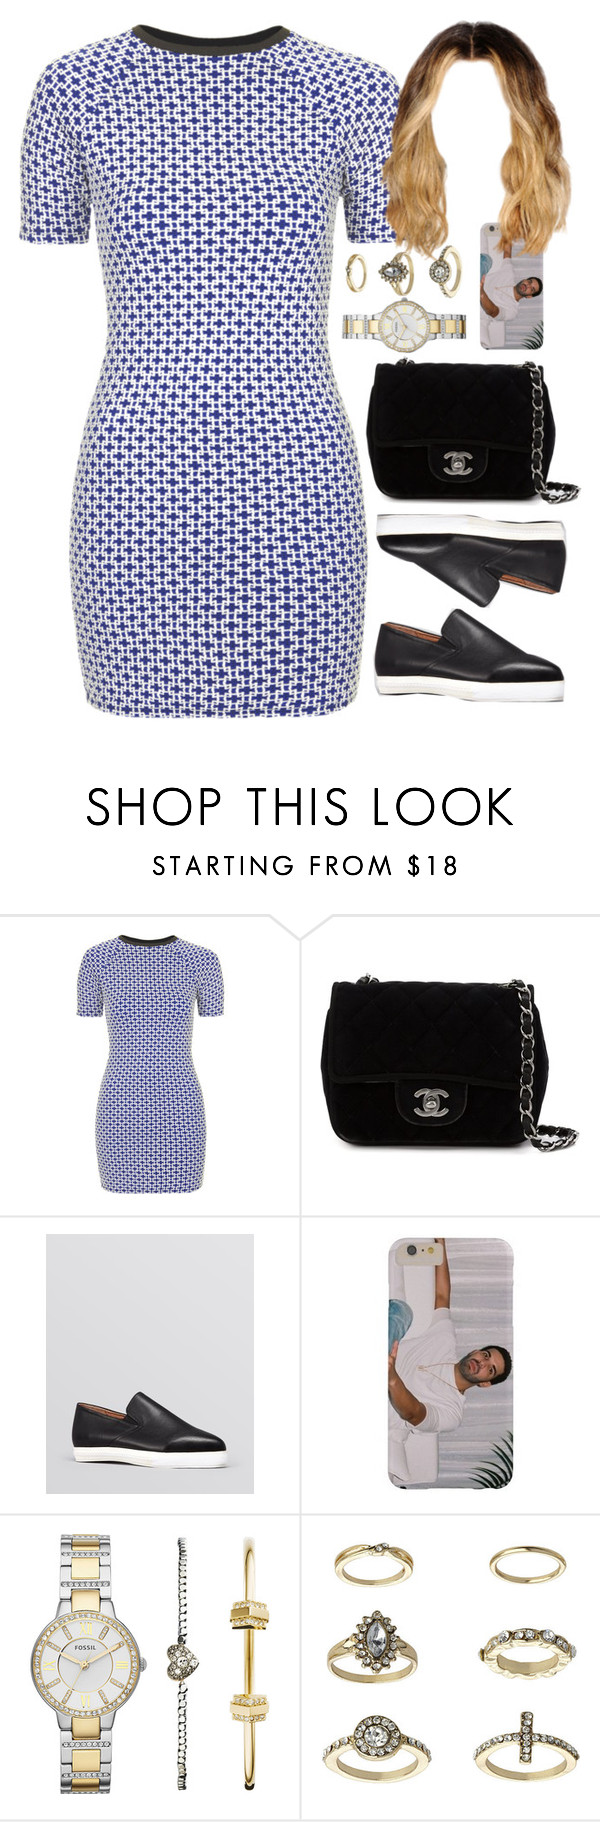 """17 May, 2016"" by jamilah-rochon ❤ liked on Polyvore featuring Topshop, Chanel, Jeffrey Campbell and FOSSIL"